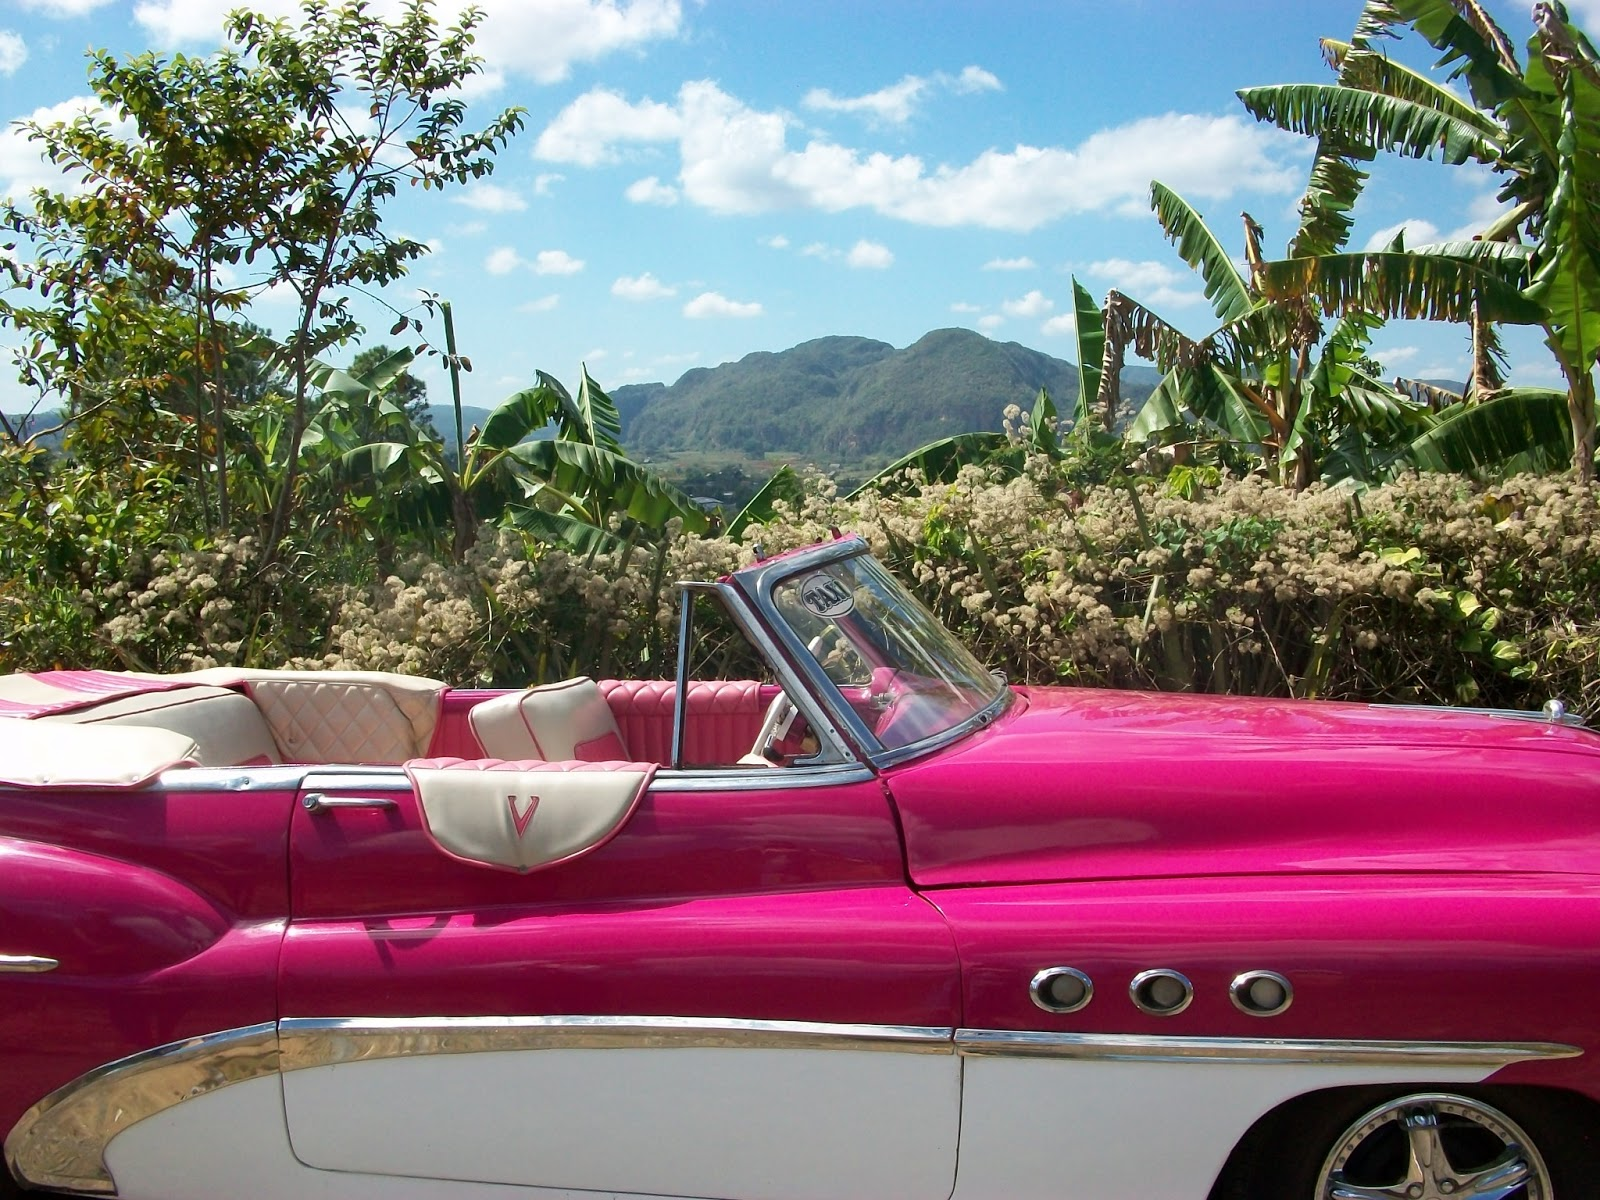 What Kind Of Cars Do They Drive In Cuba